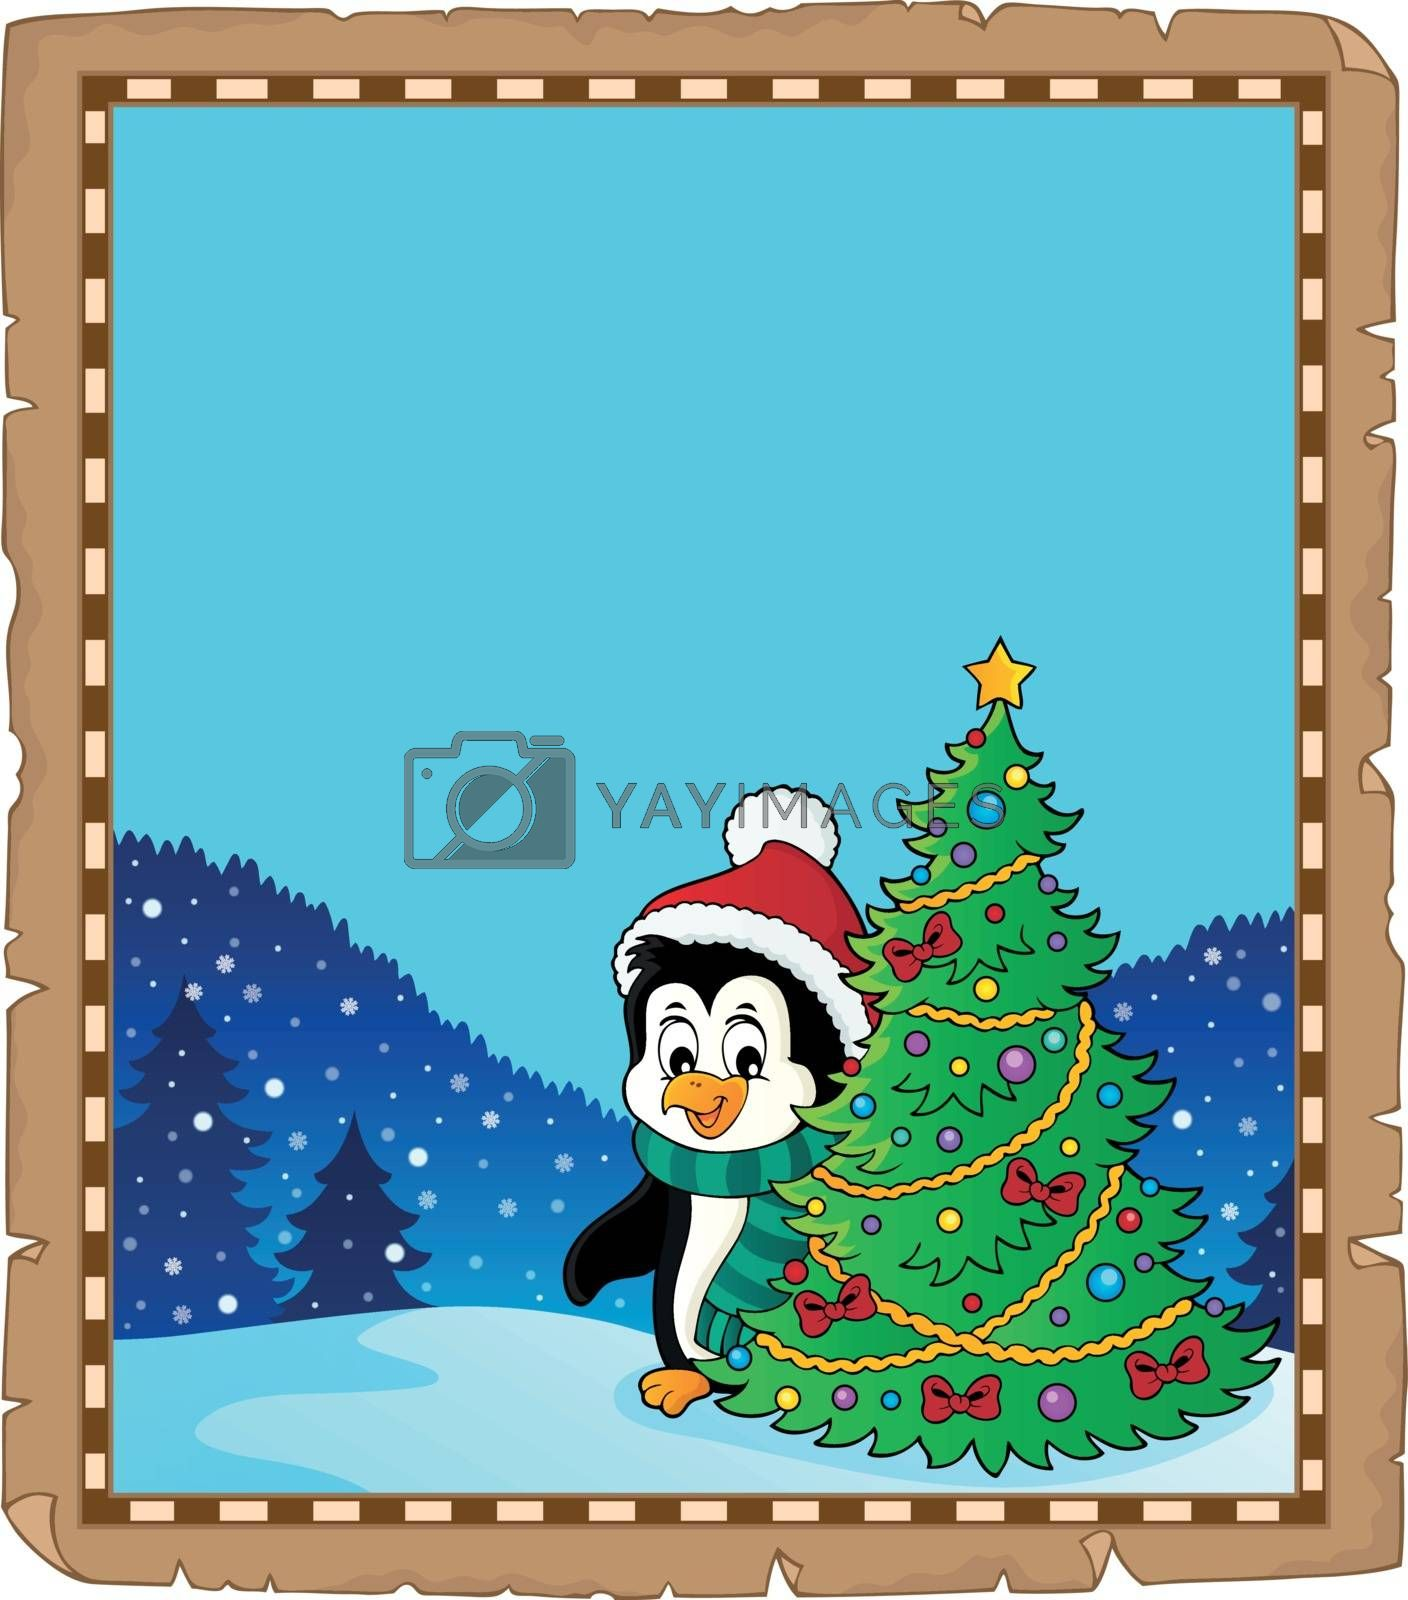 Penguin with Christmas tree parchment 2 - eps10 vector illustration.